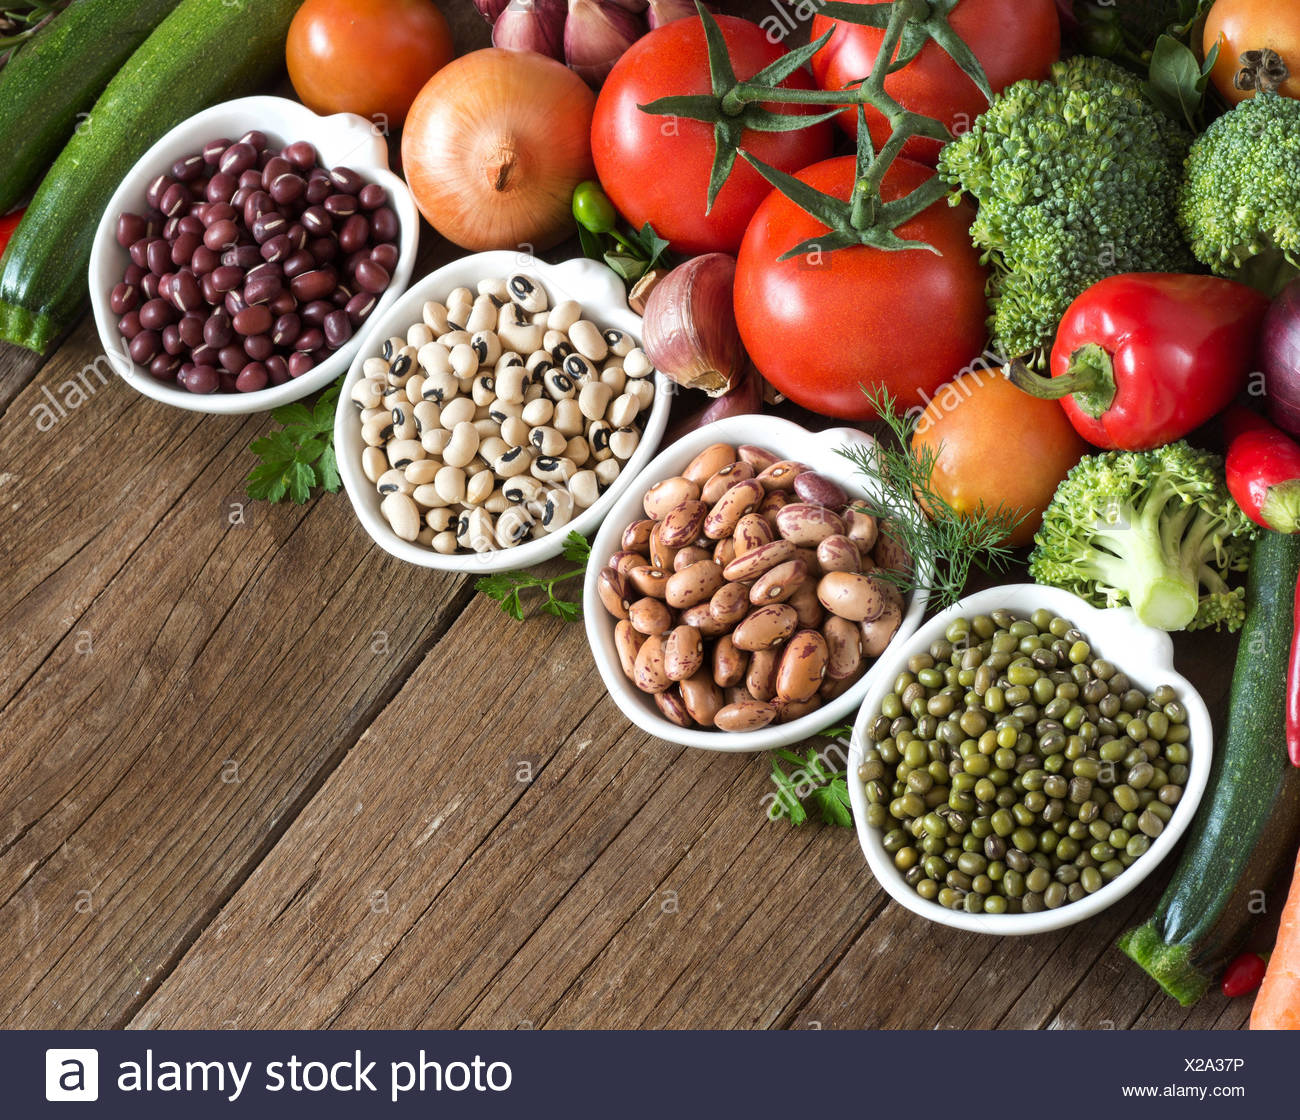 Legumes In Bowls And Vegetables Stock Photo Alamy